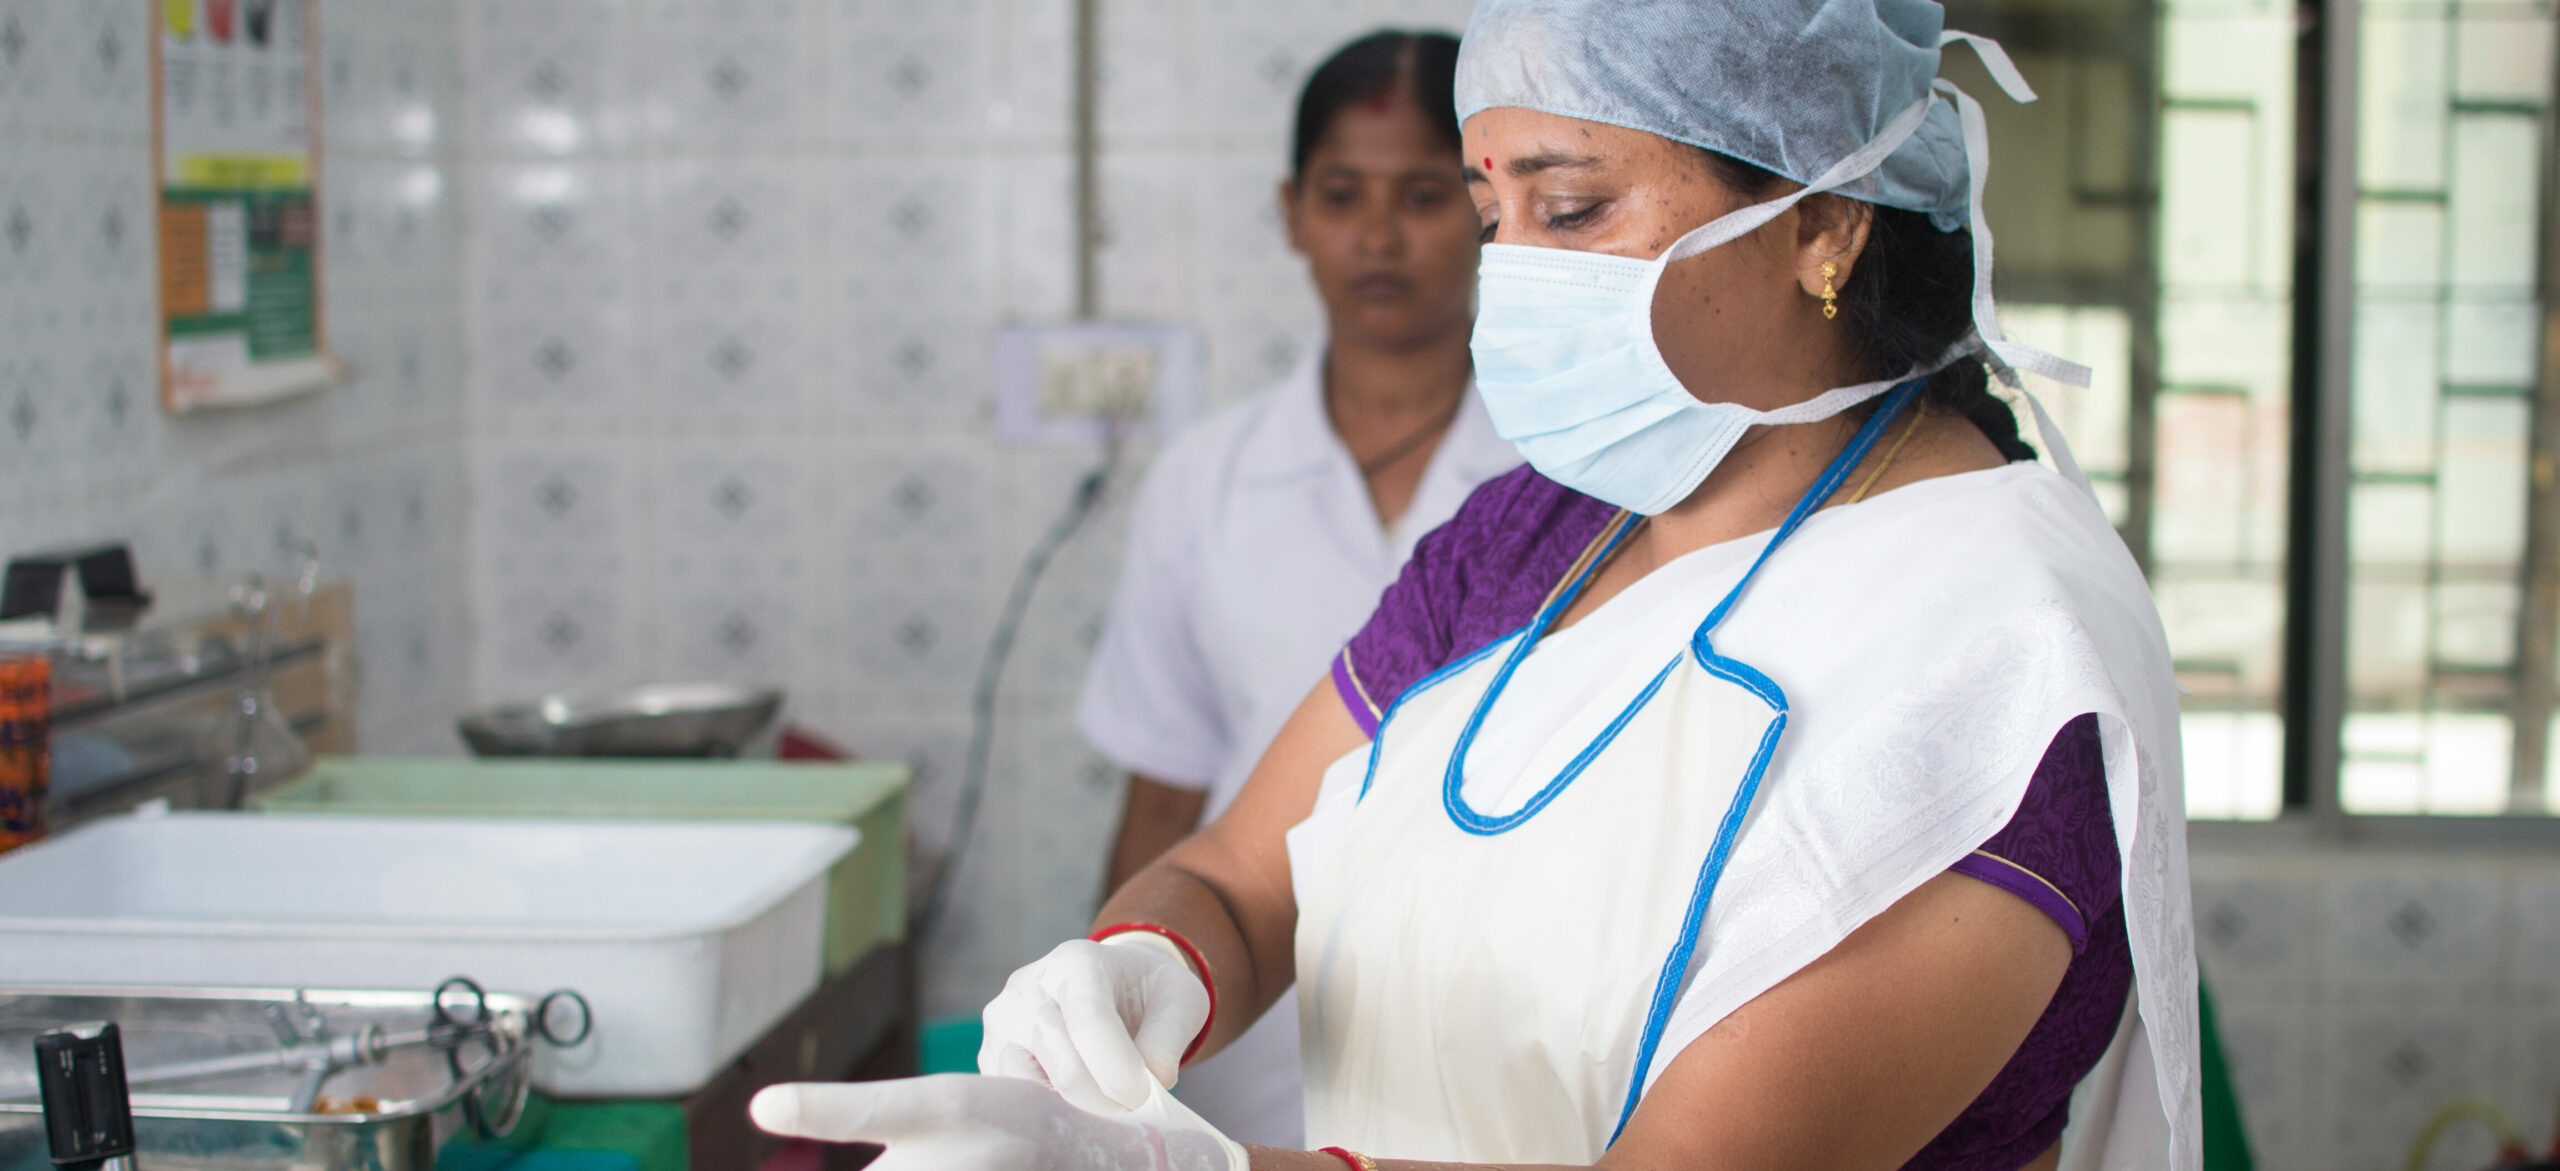 India/City Hospital- Cuttack: Following infection prevention protocols is at the center of establishing quality FP services. Here a staff nurse prepares for a tubal ligation procedure.